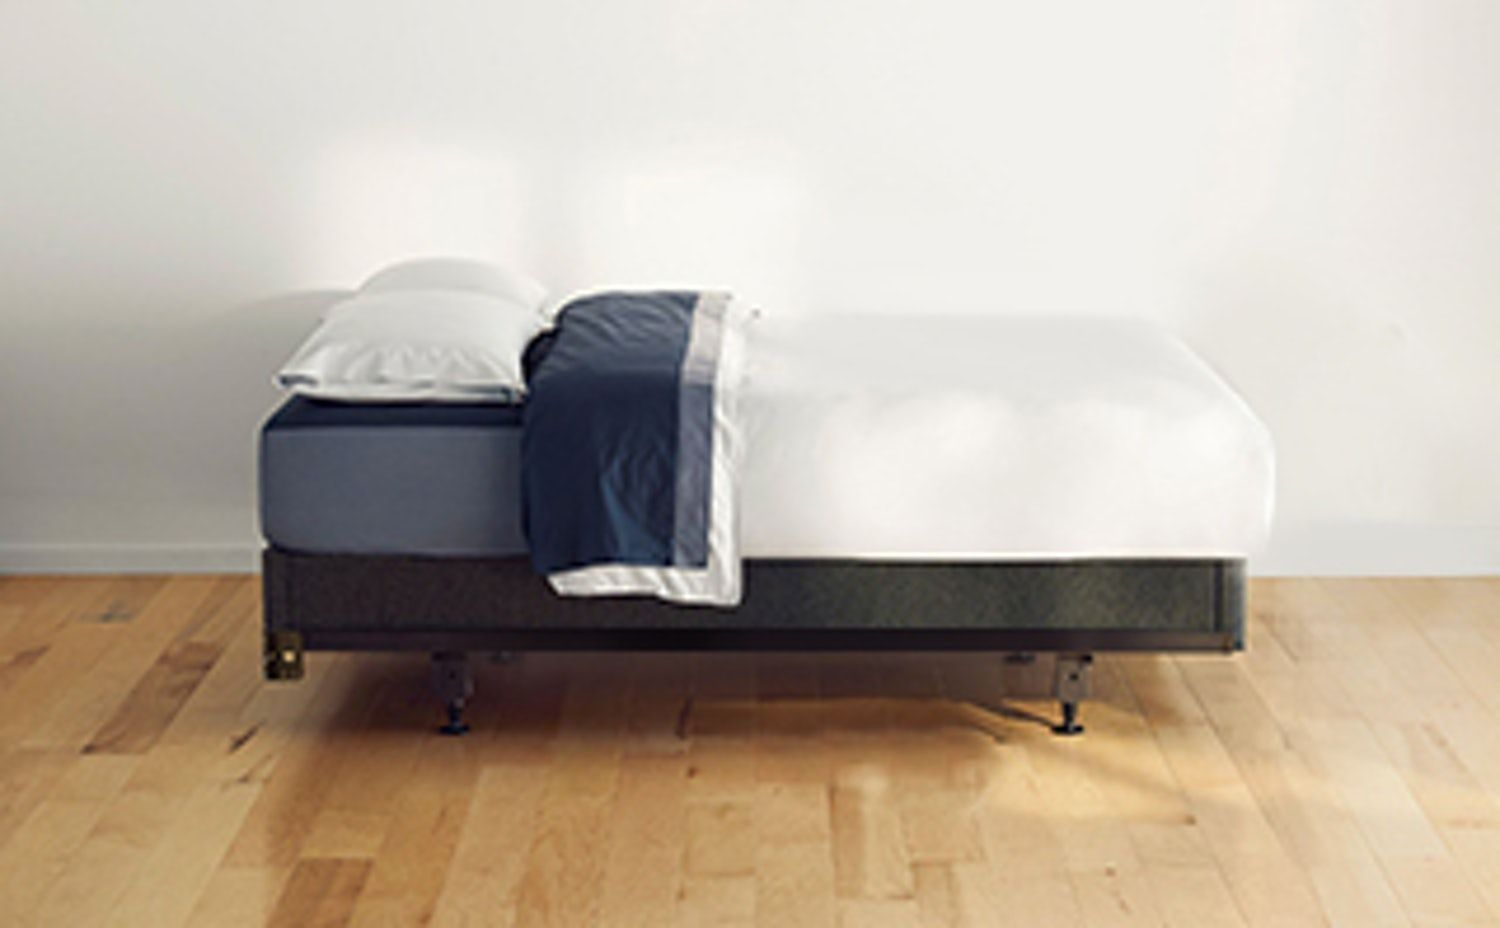 Casper Mattress In 2020 Casper Mattress Mattress Casper Bed